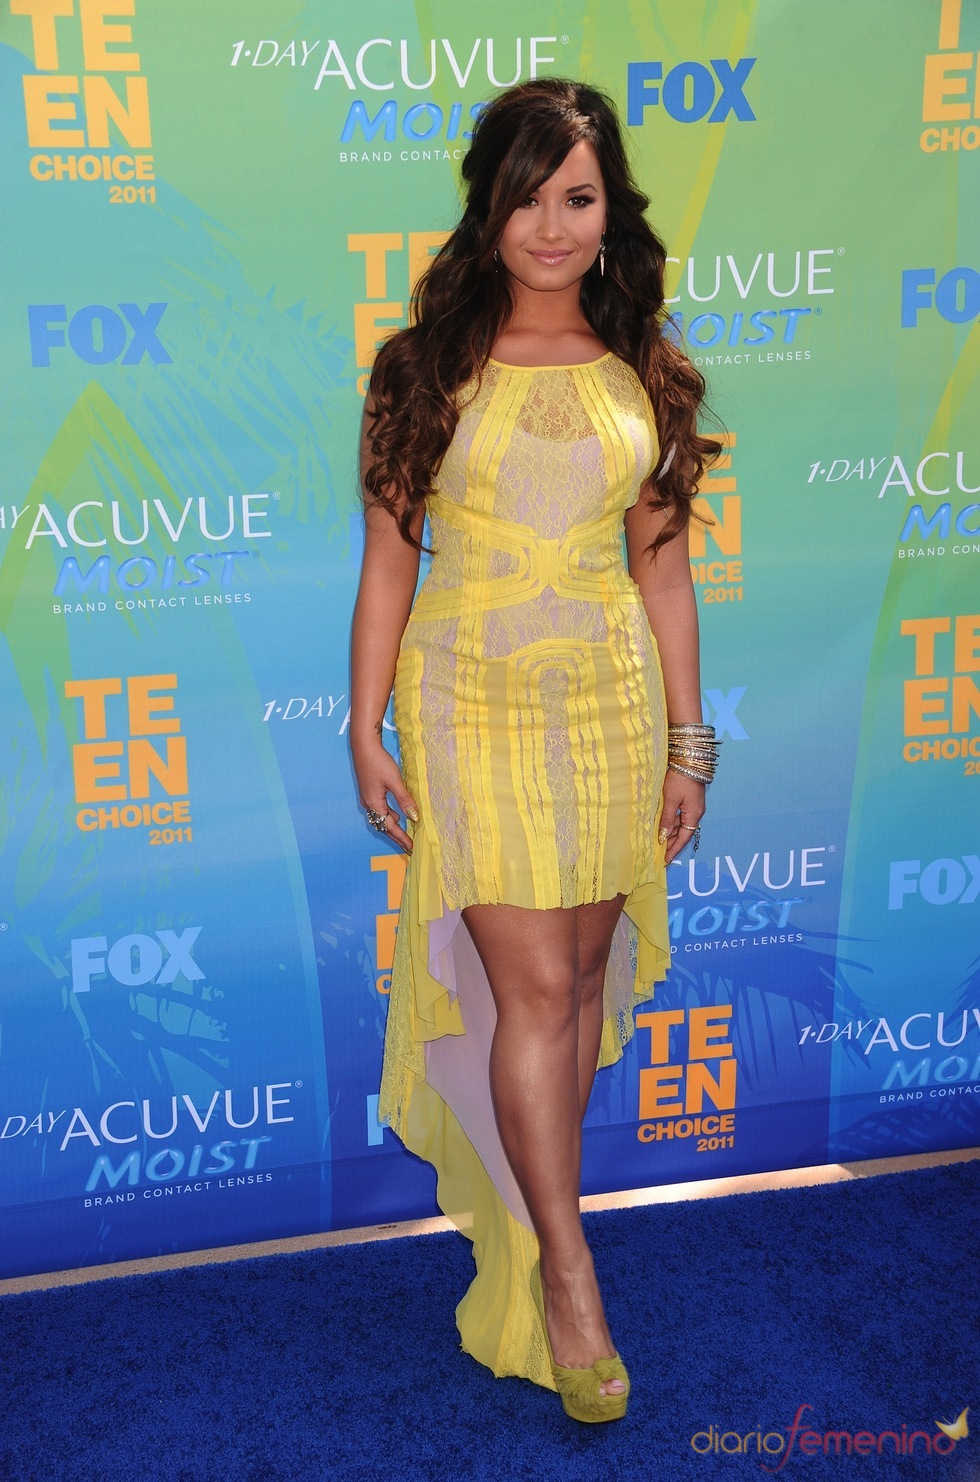 Demi Lovato en la alfombra azul de los Teen Choice Awards 2011